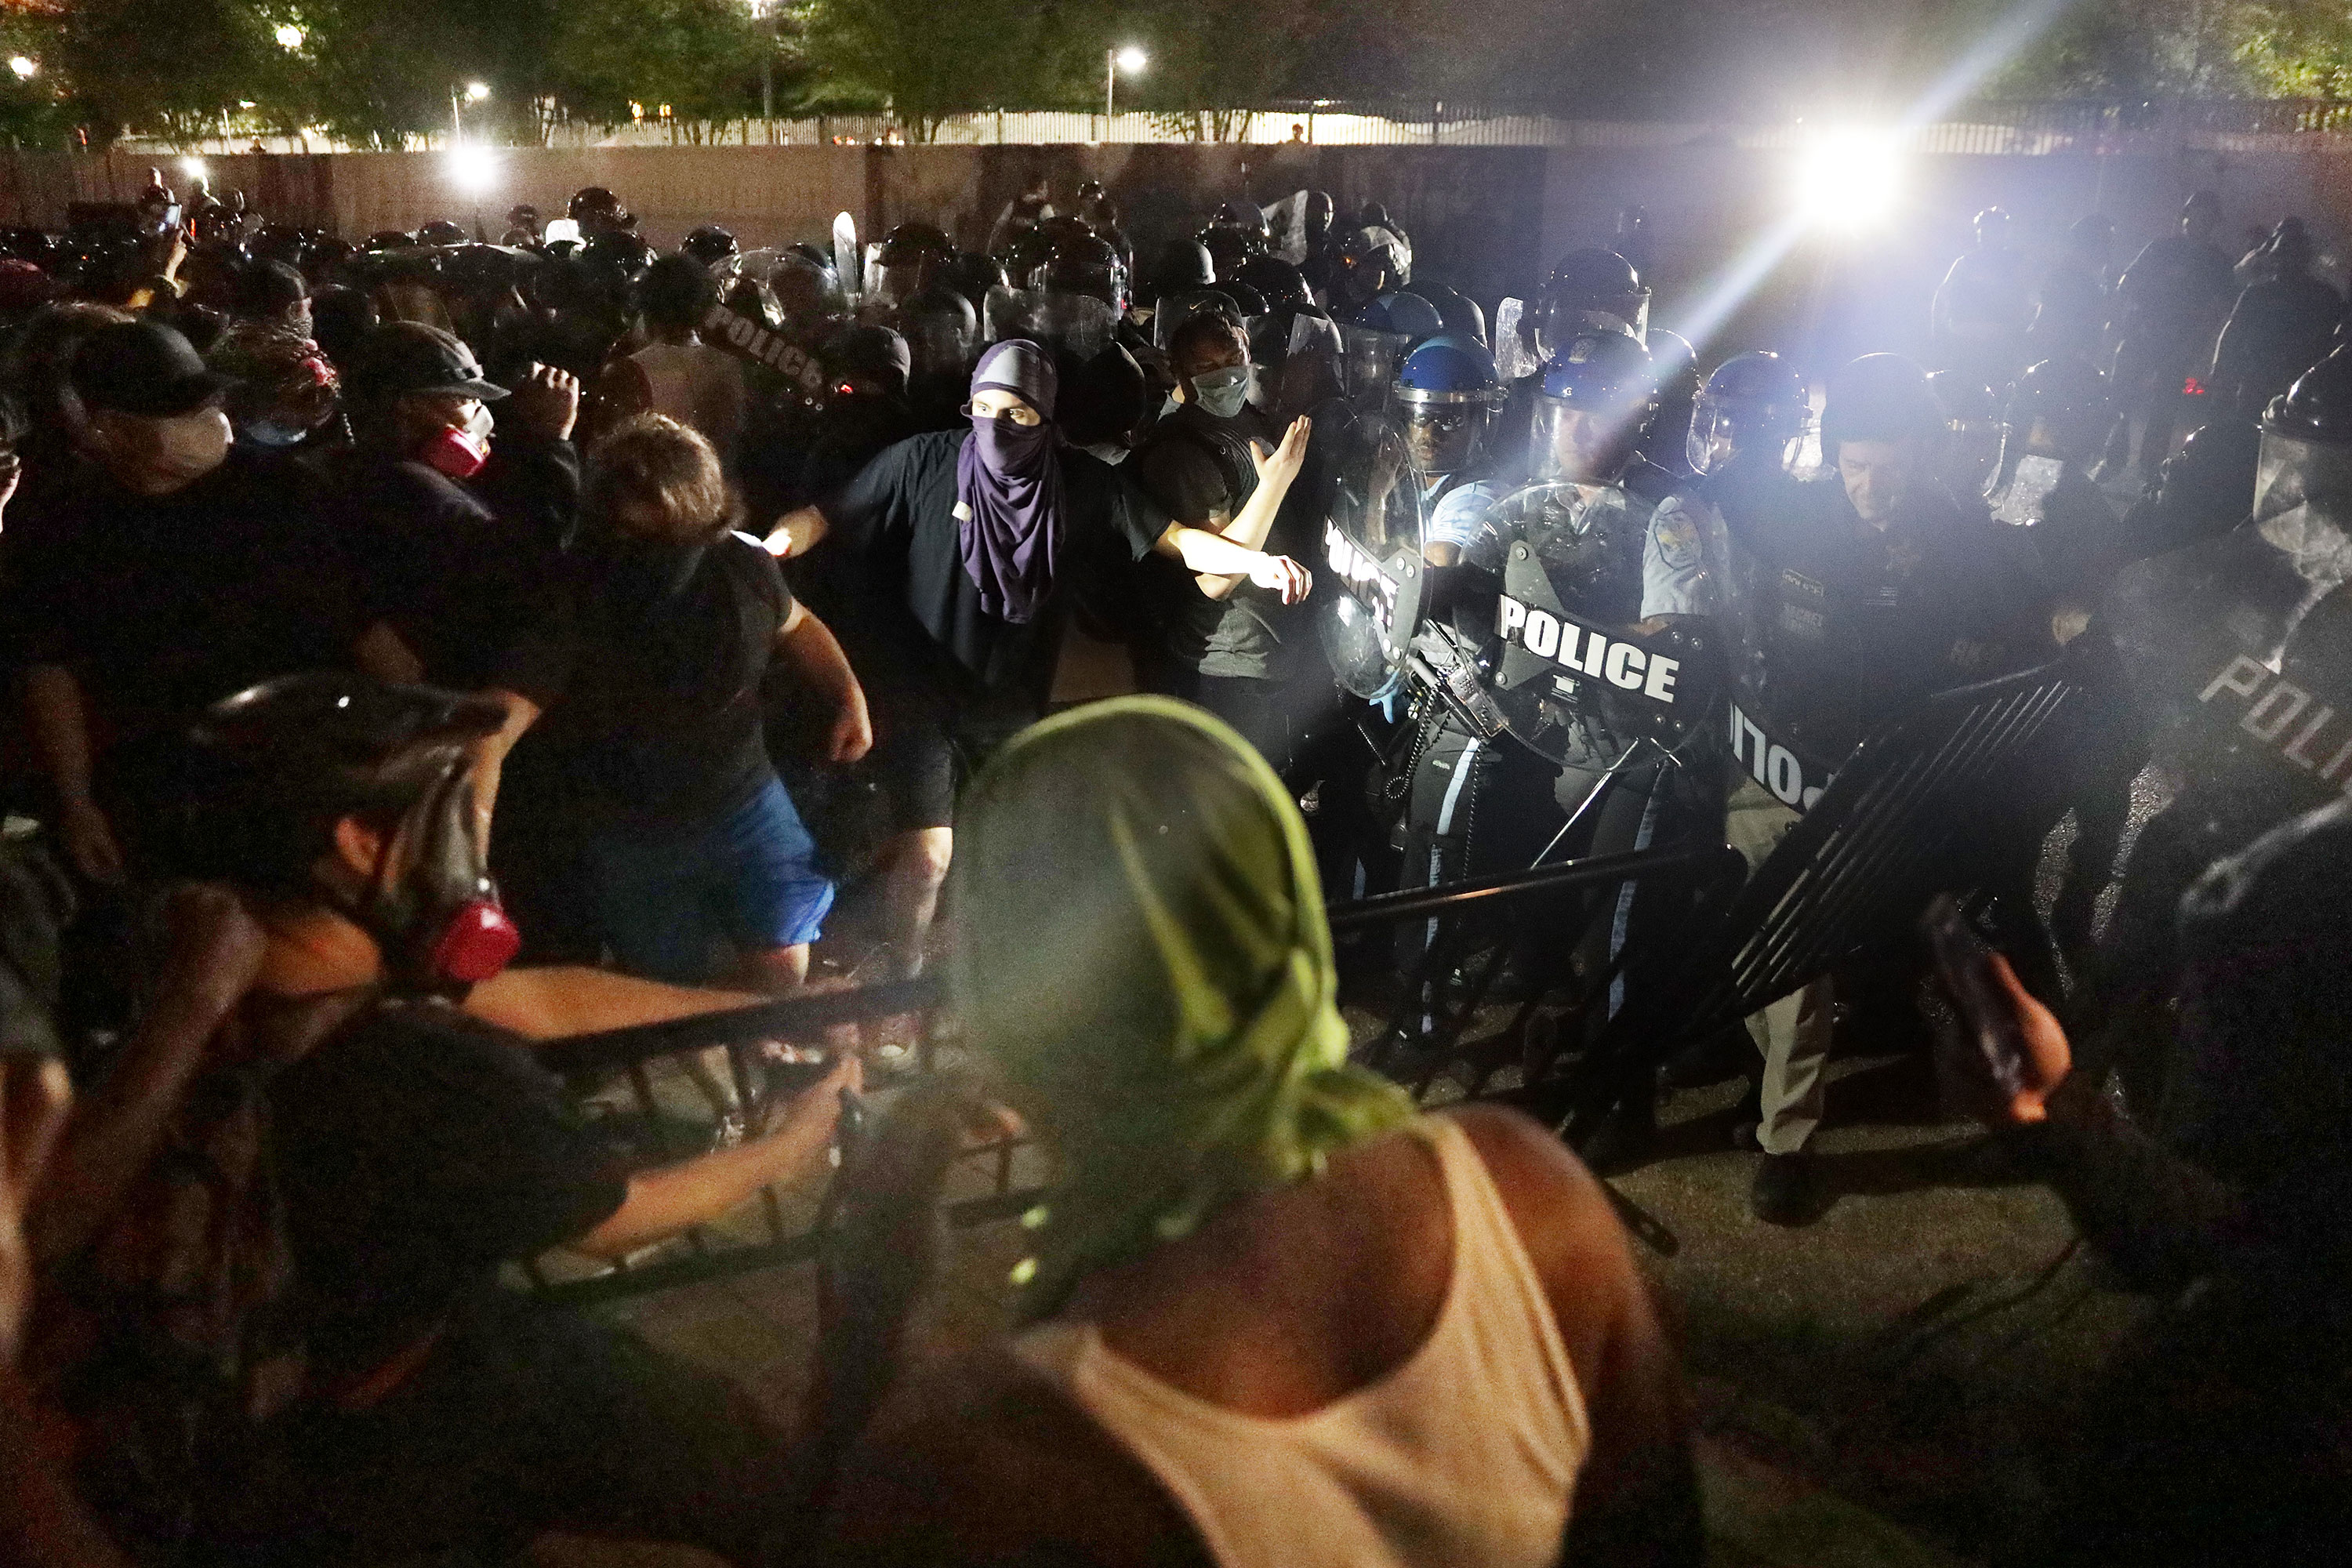 Protesters clash with police in Lafayette Square Park in Washington on May 30.